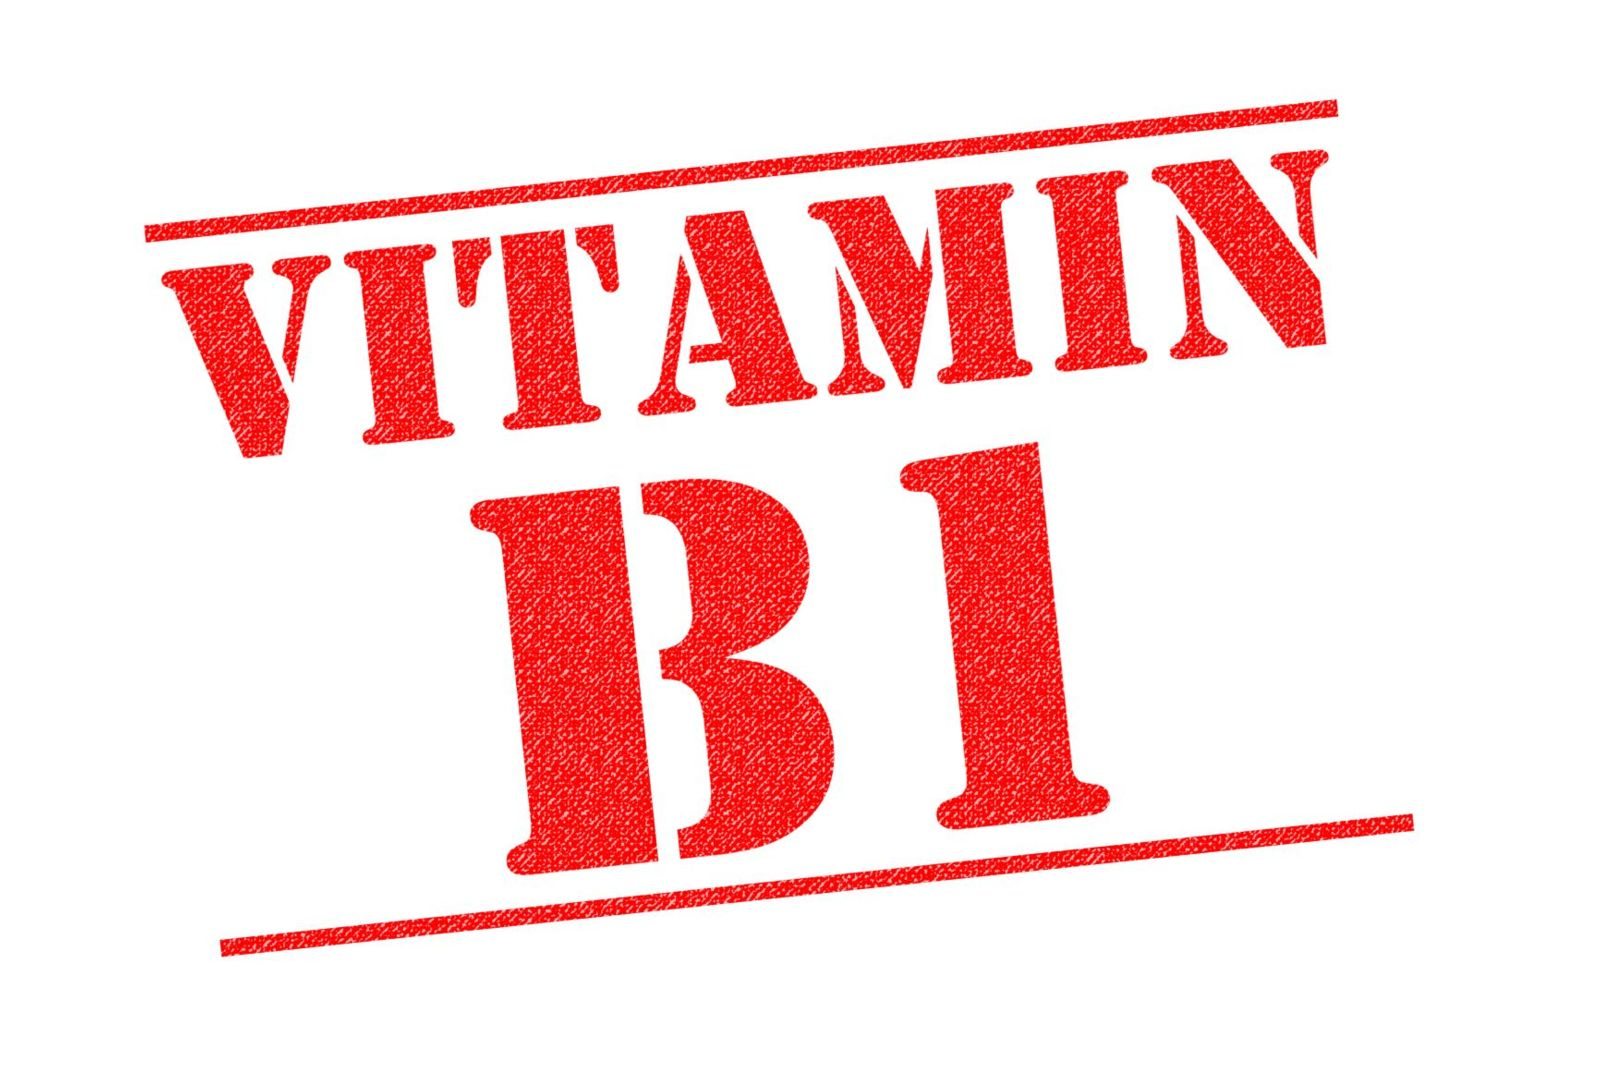 Supplements containing Vitamin B1 can help manage neuropathy symptoms